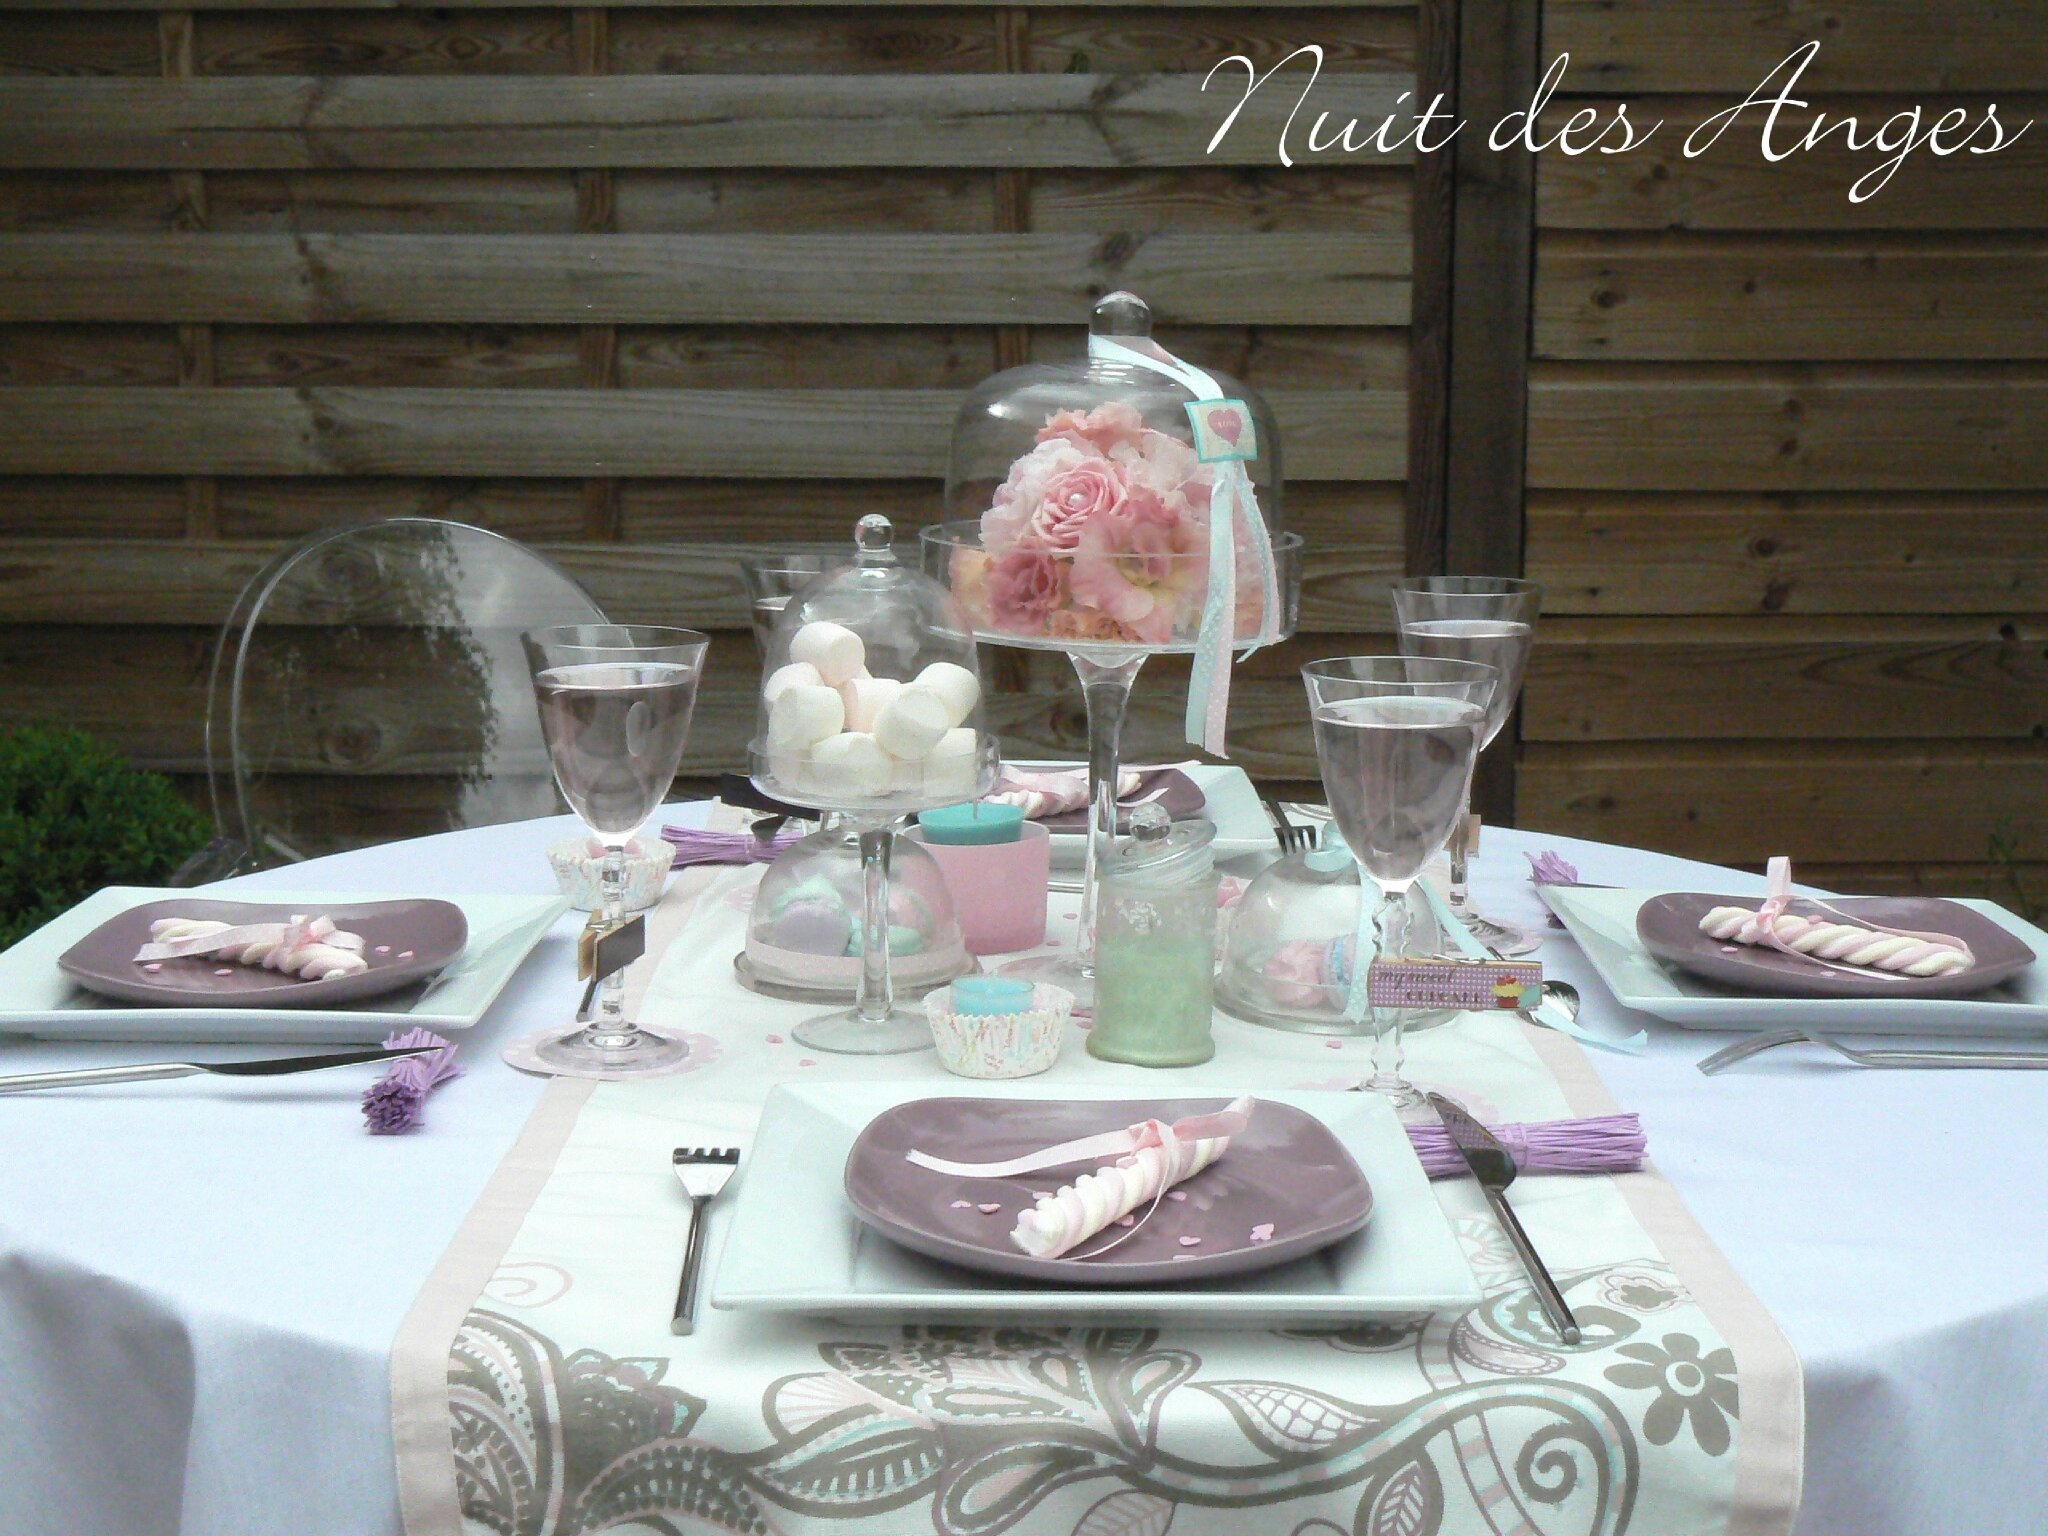 D coration de table gourmandise nuit des anges - Deco table gourmandise ...